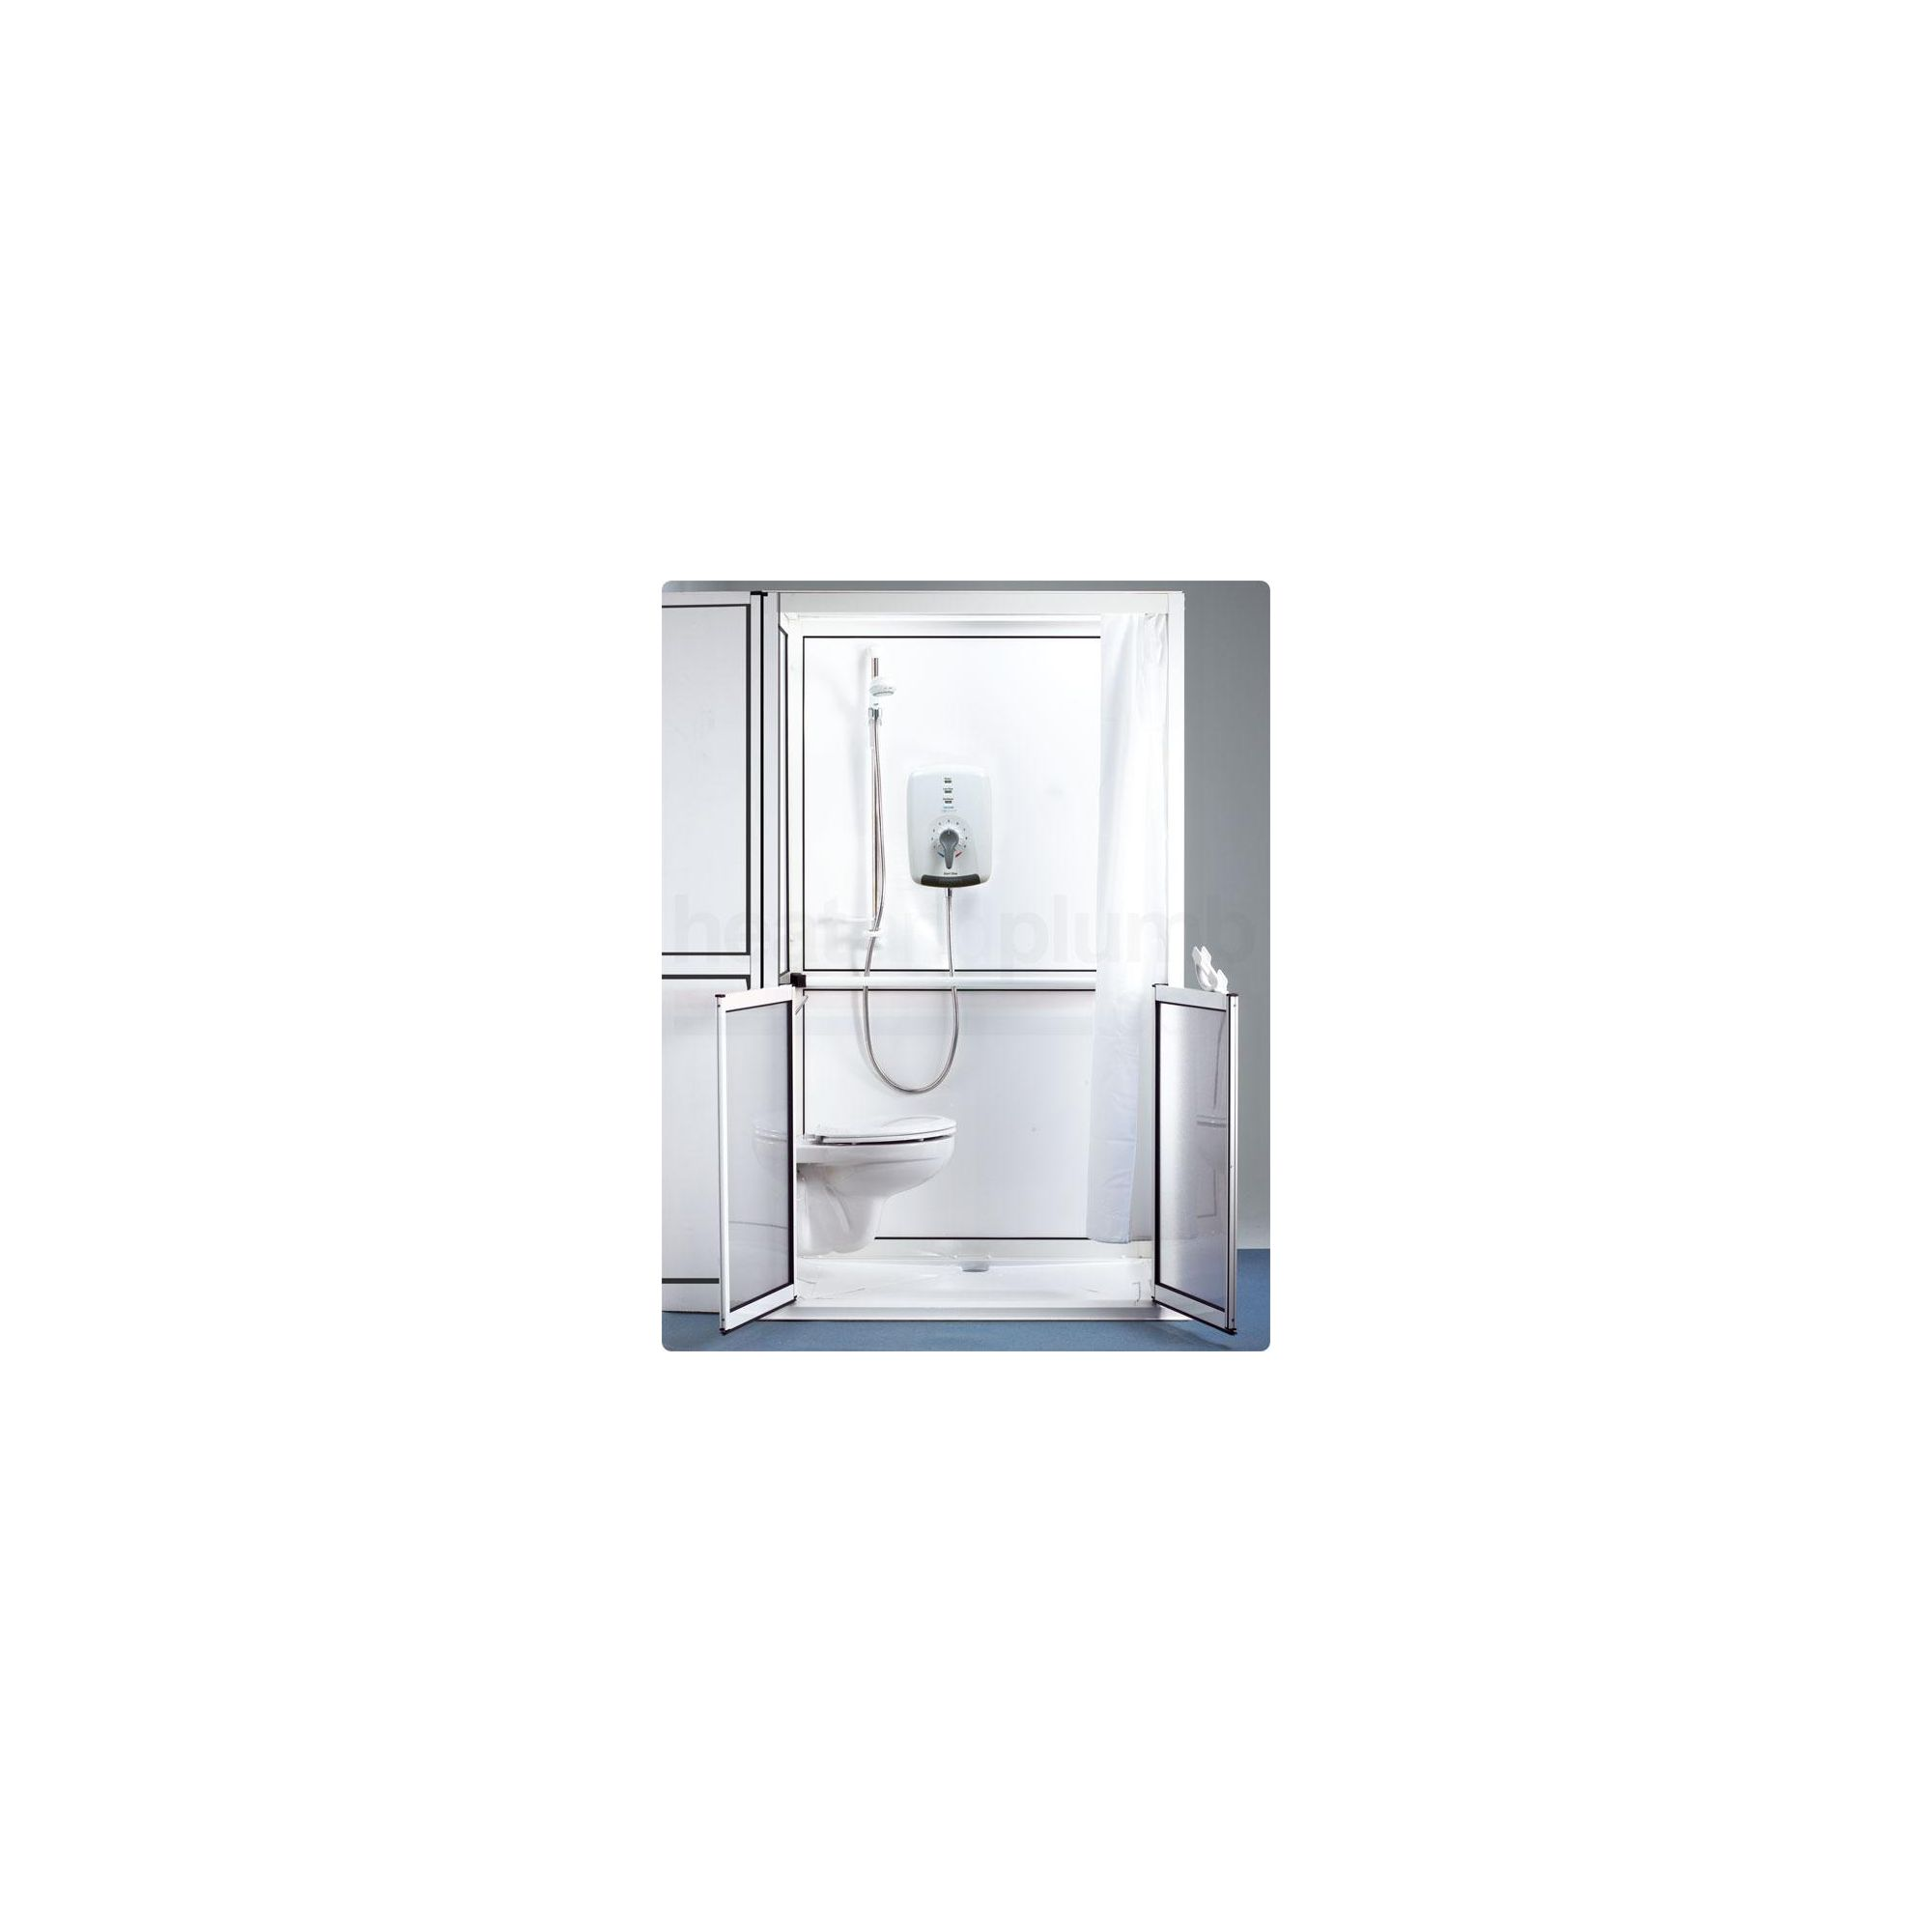 AKW ShowerLoo Shower Cubicle 1200mm x 800mm at Tesco Direct